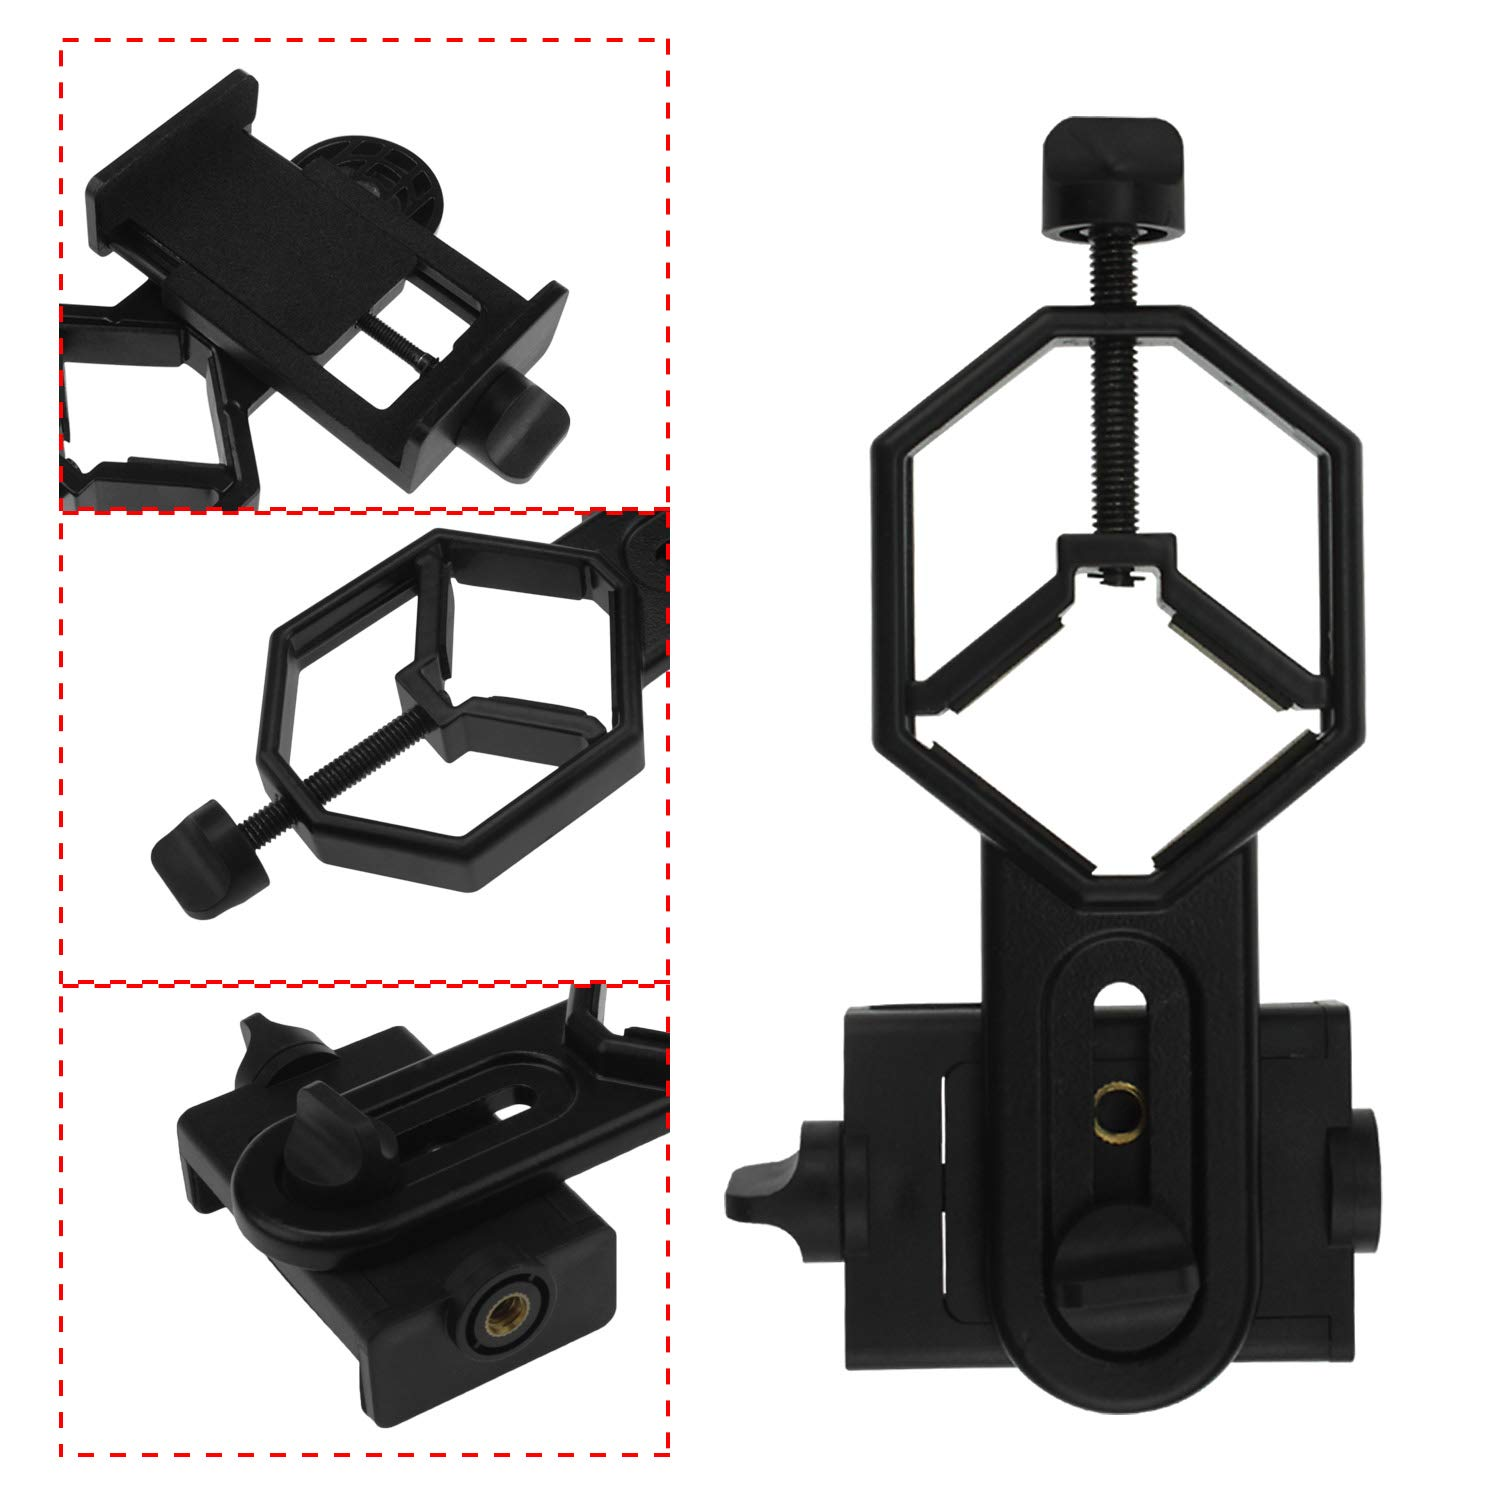 Astromania Universal Cell Phone Adapter Mount Support Binocular Monocular Spotting Scope Telescope and Microscope Optical Device Black